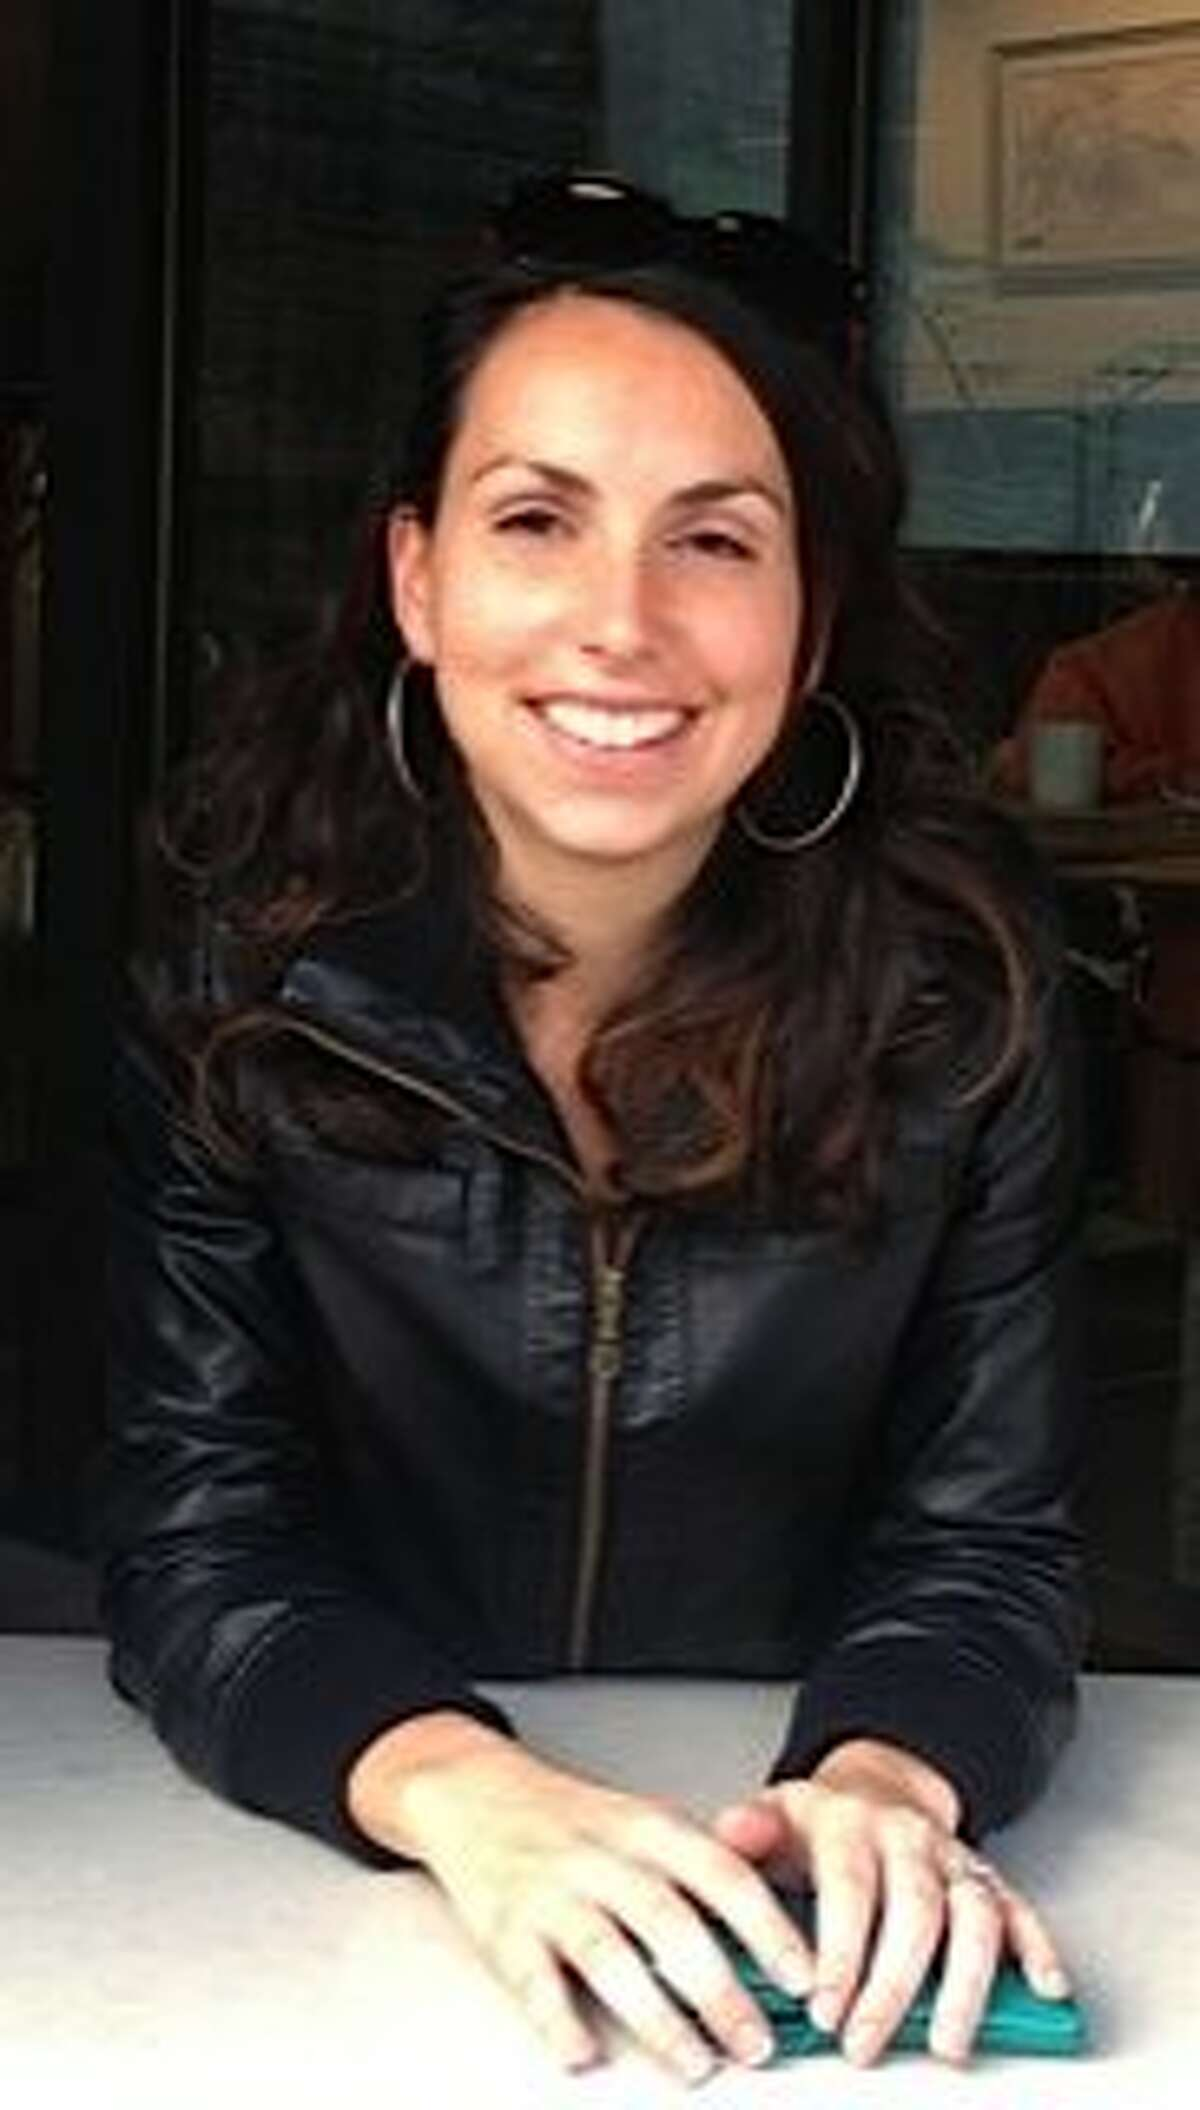 JenniferMendiola was identified as one of the victims of a warehouse fire in Oakland on Dec. 2, 2016.